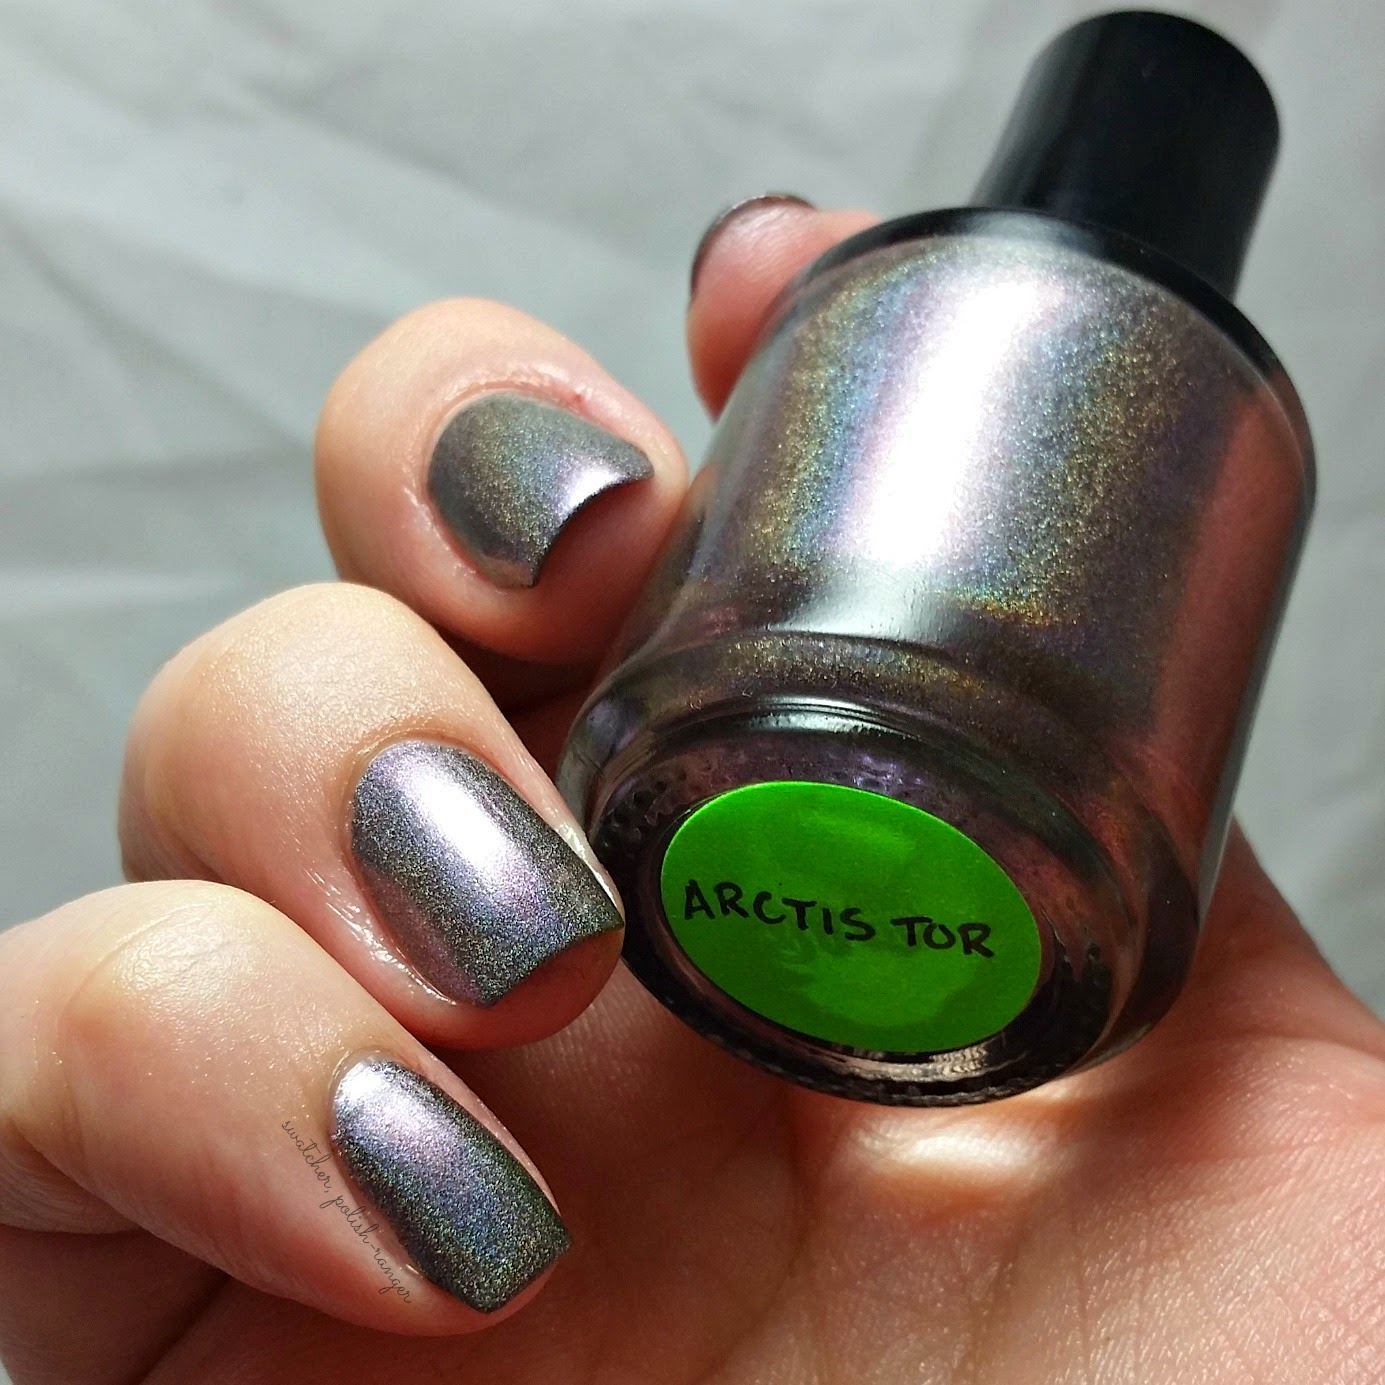 swatcher, polish-ranger | Octopus Party Nail Lacquer Arctis Tor swatch